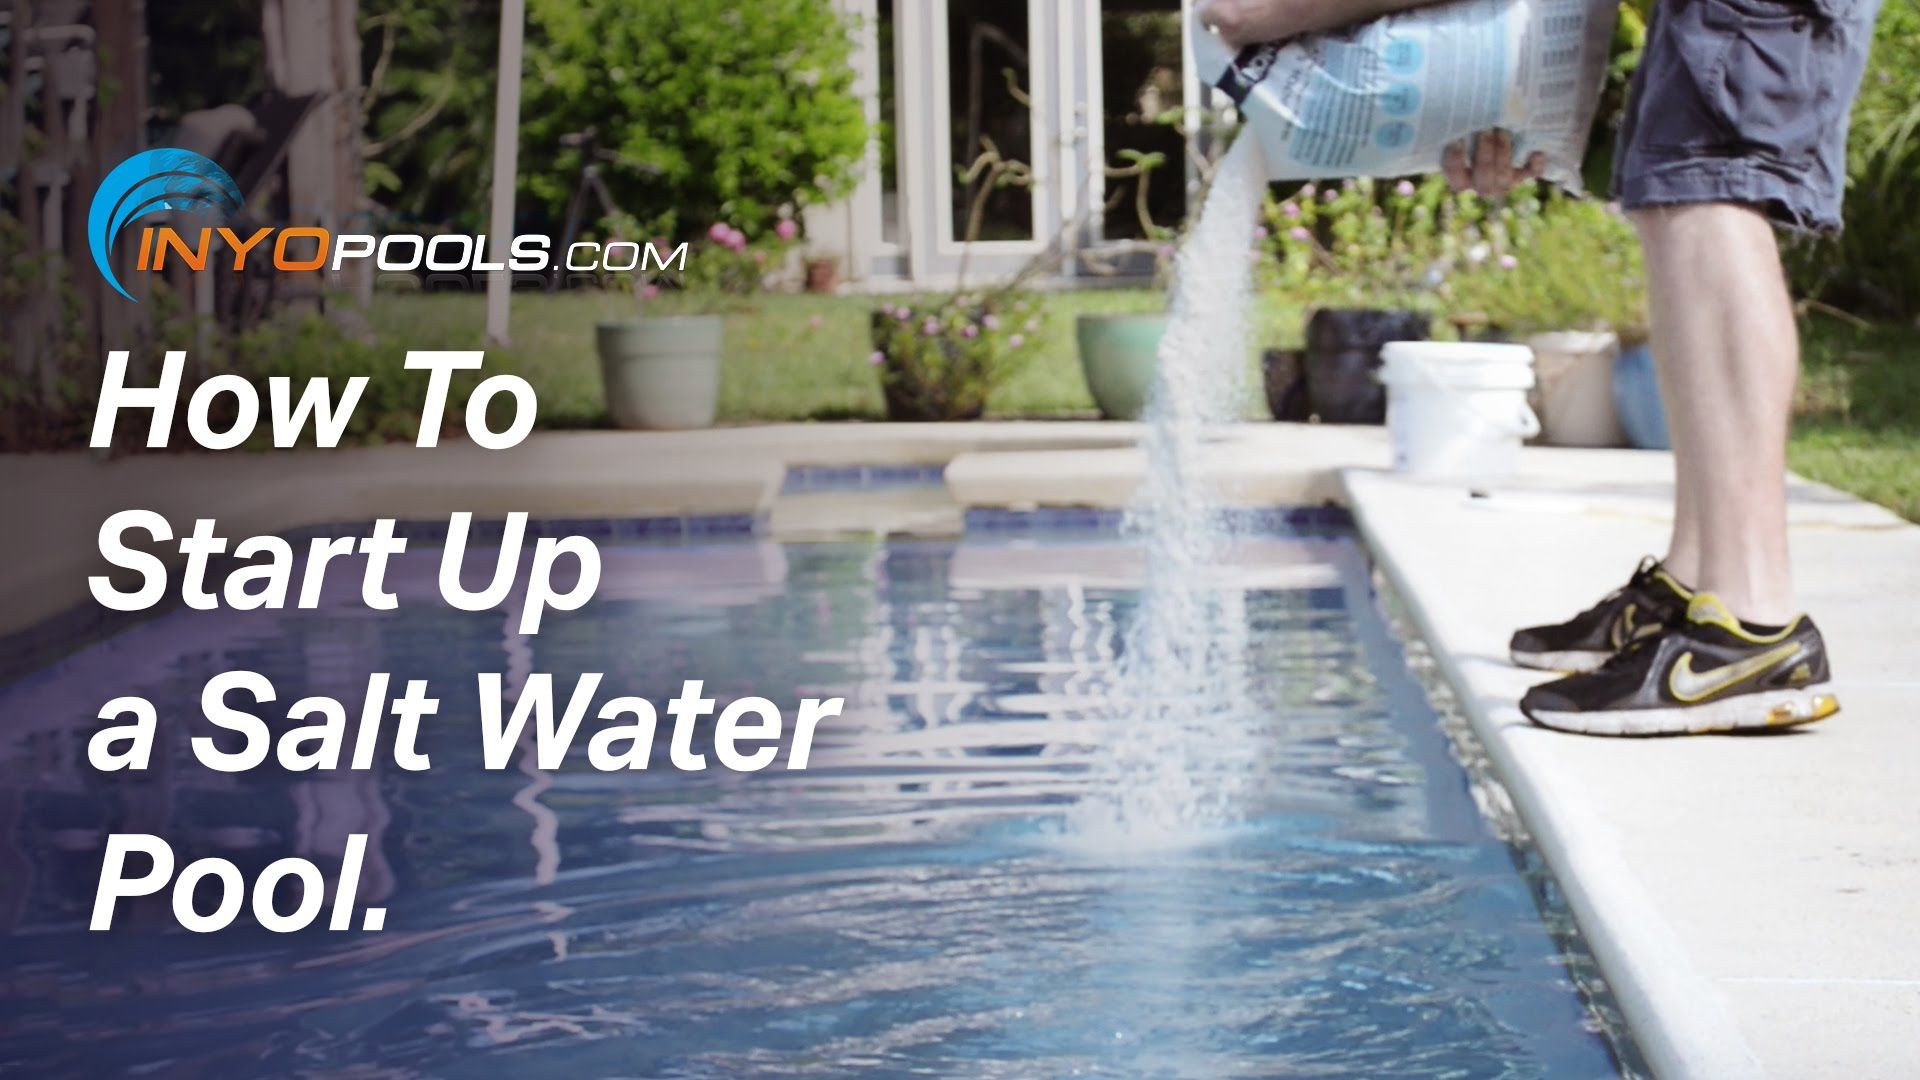 SUBSCRIBE for FREE pool care and maintenance videos every